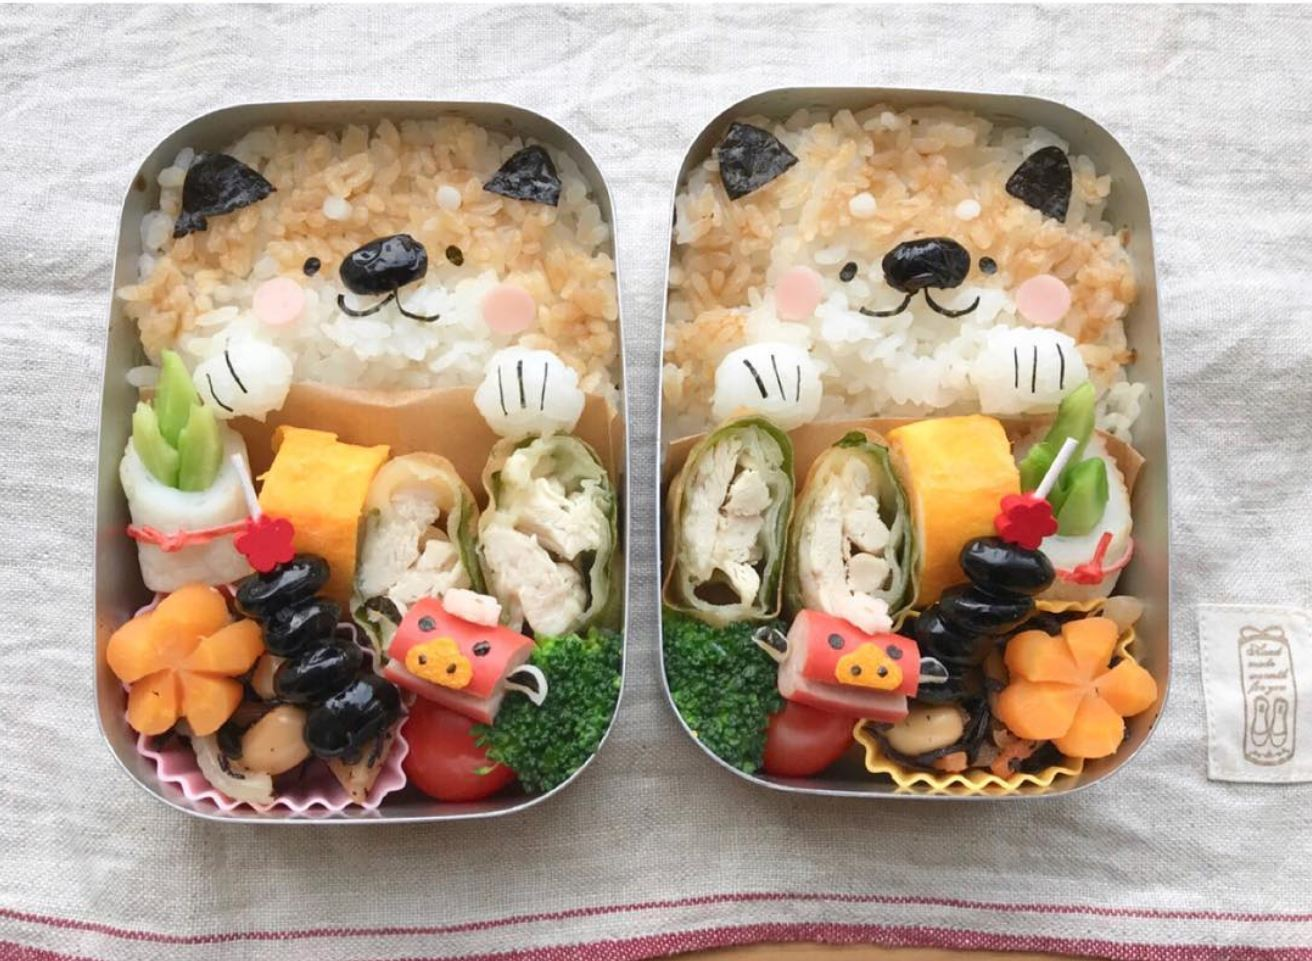 These First Bento Boxes Are Adorable Shiba Inu Designs What We Find So Fascinating Is How All The Food Manages To Look Healthy Delicious